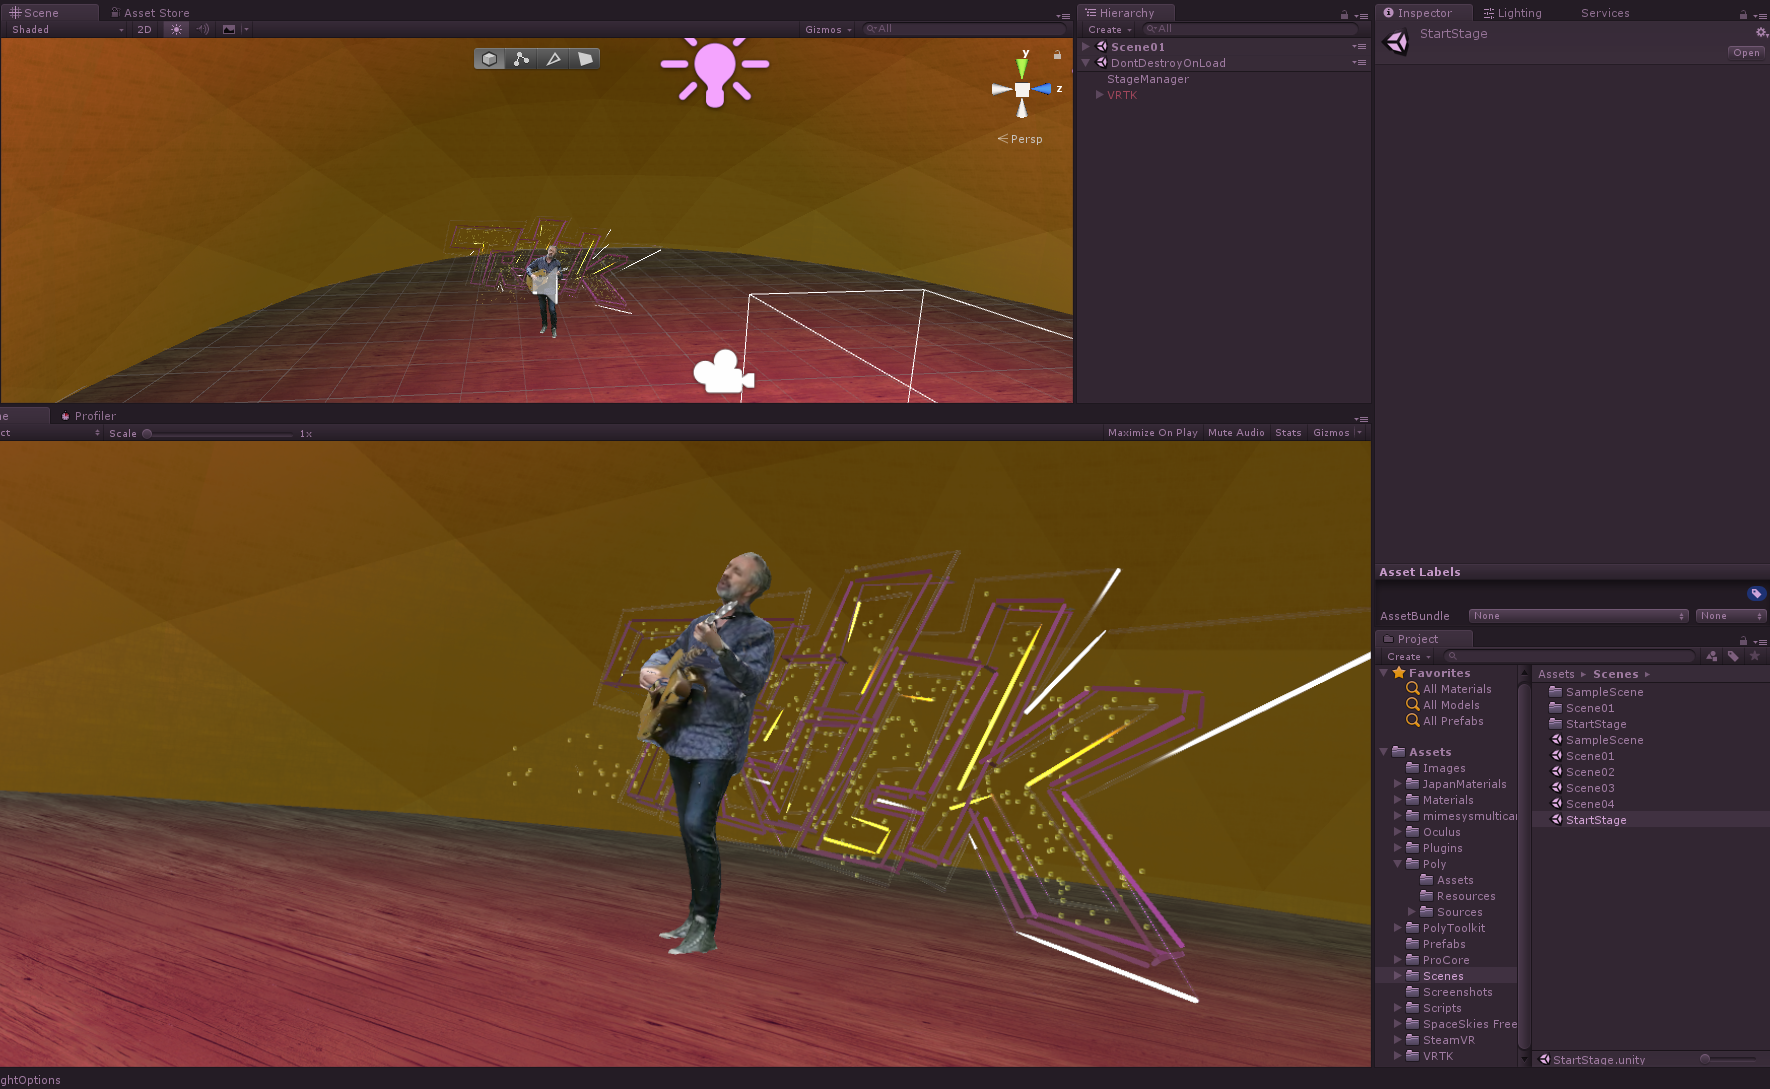 During July 2018, I participated in the Arts Council funded Megaverse XR Theatre Lab in Sheffield. I helped the project by building a virtual stage system for Unity, where mixed reality content was combined with participants in VR for experimenting with forms of new virtual theatre:  https://megaverse.blog/